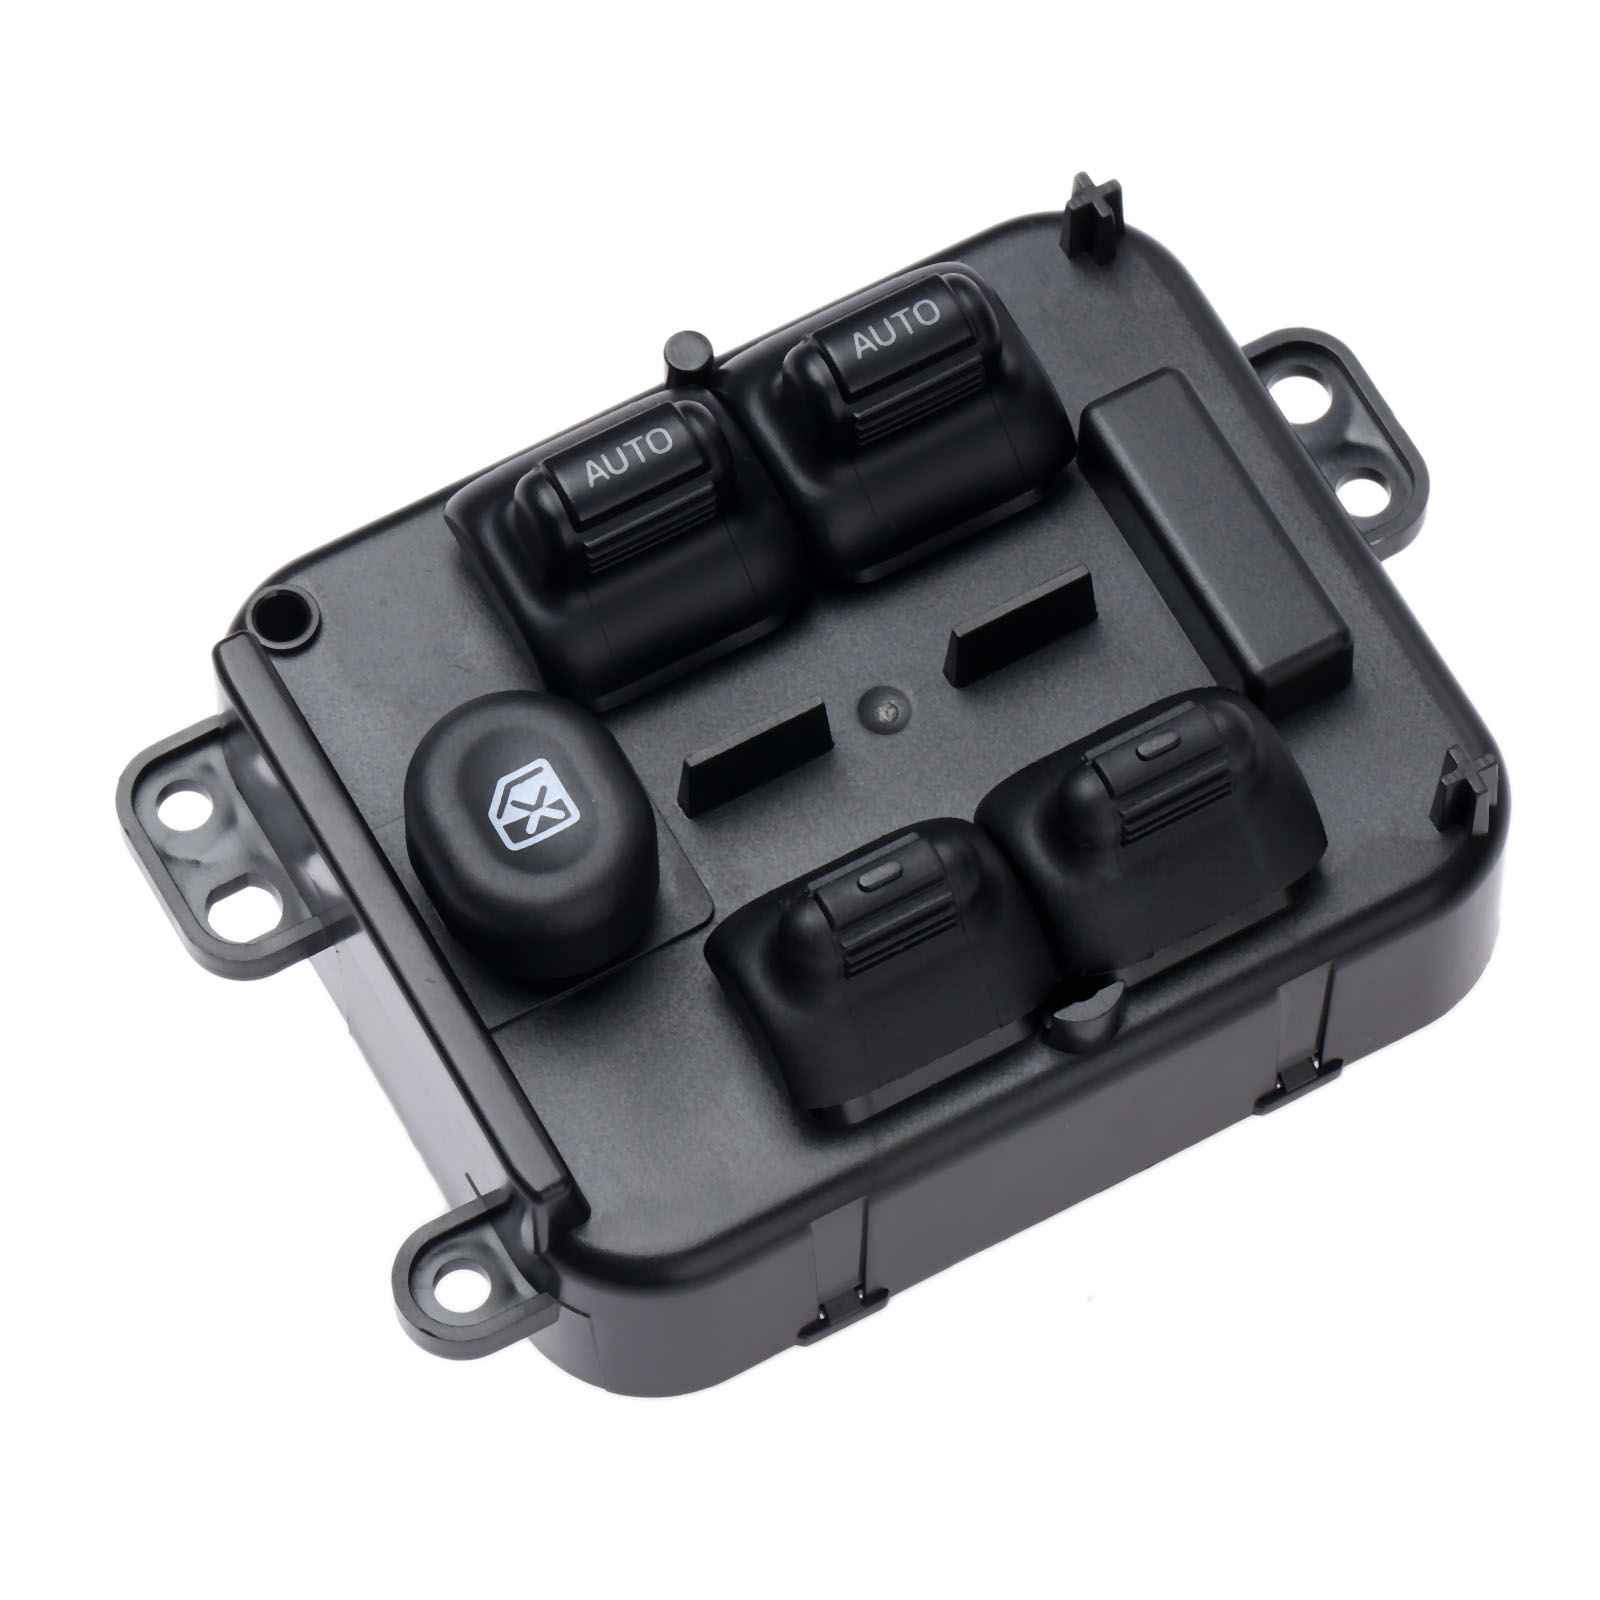 Yetaha Front Left Side Power Master Window Control Switch Center Console For Jeep Liberty 2005 2007 56054002AA-in Car Switches & Relays from Automobiles & Motorcycles    1